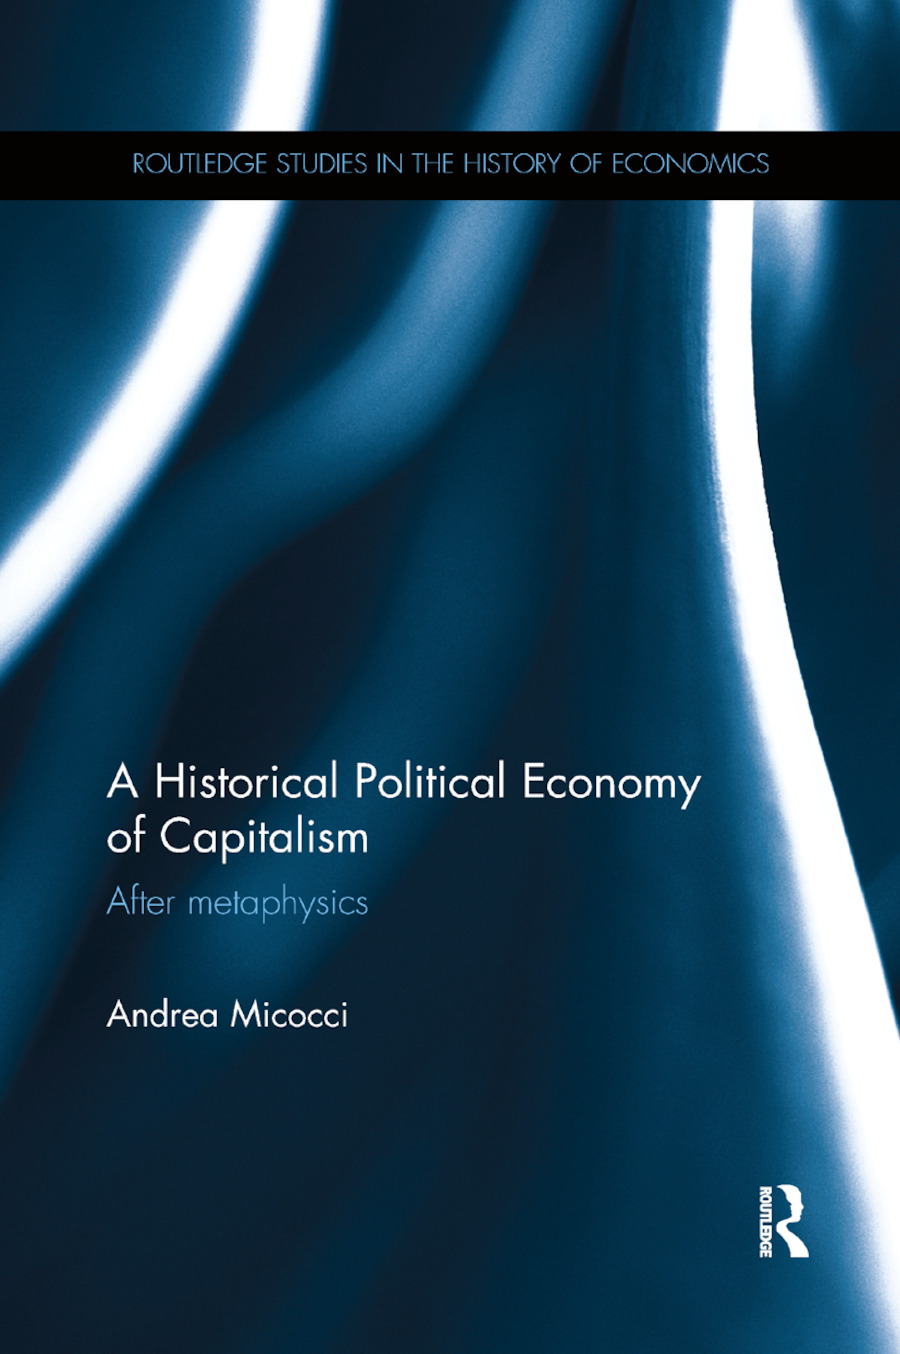 A Historical Political Economy of Capitalism: After metaphysics book cover